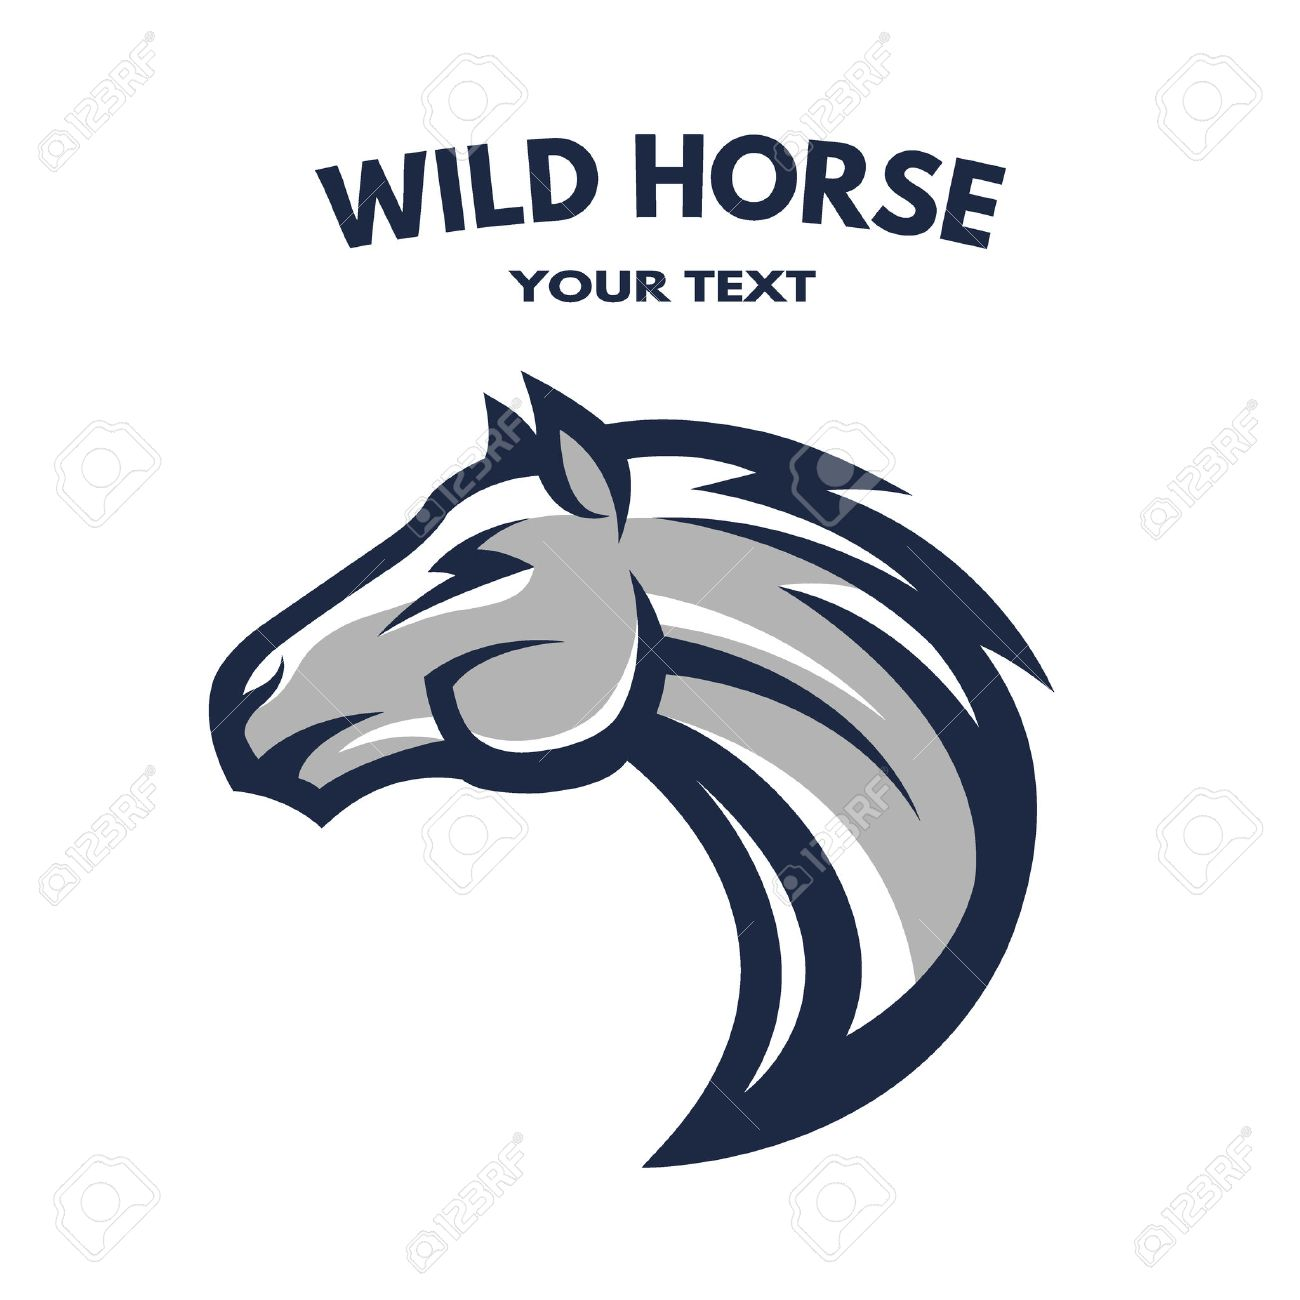 Wilde Horse Symbol Logo Vector Illustration Royalty Free Cliparts Vectors And Stock Illustration Image 47563193